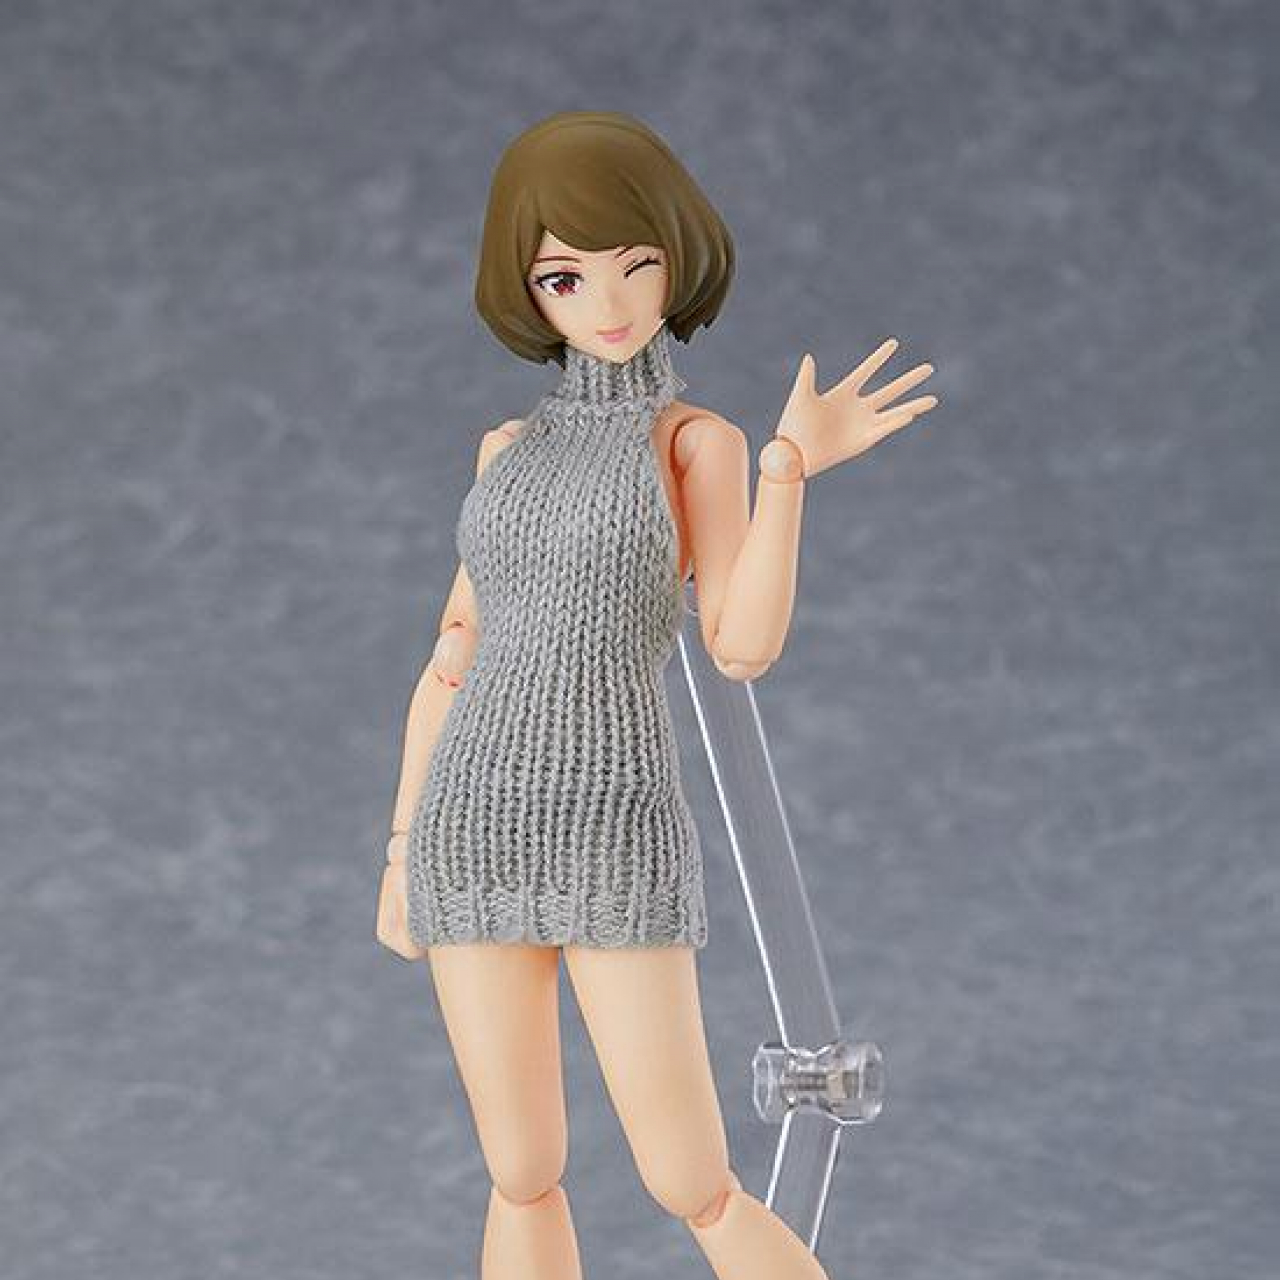 Original Character Figma Action Figure Female Body Chiaki with Backless Sweater Outfit 13 cm